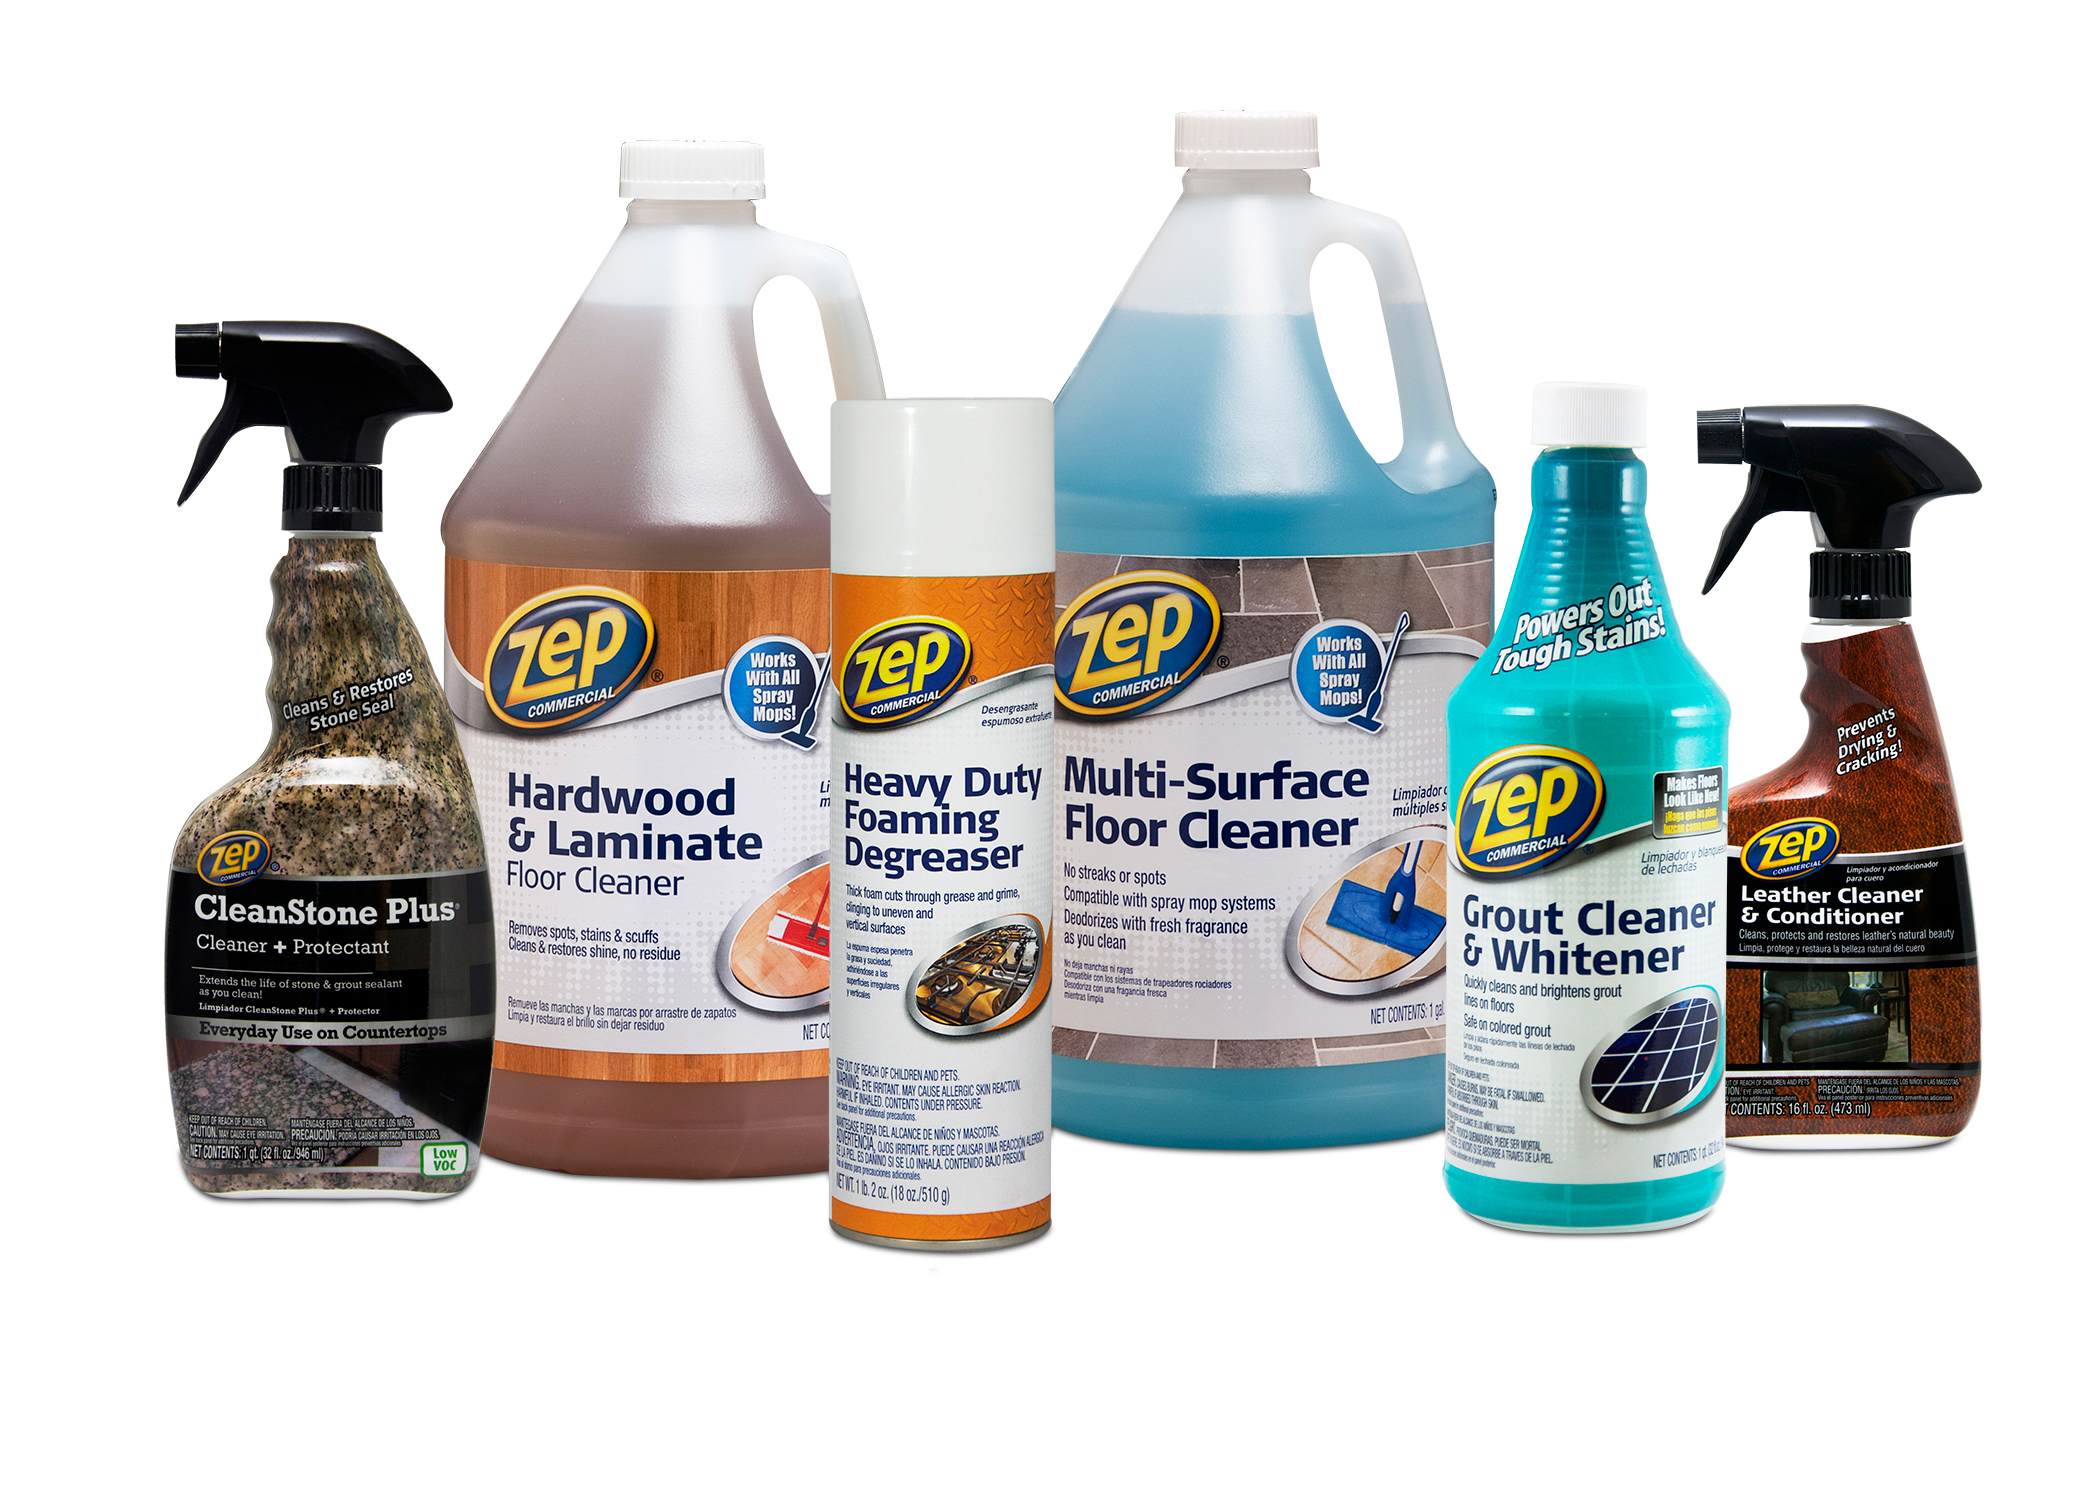 Zep Commercial Cleaners Protectants And Degreasers Now Available Walmart Business Wire